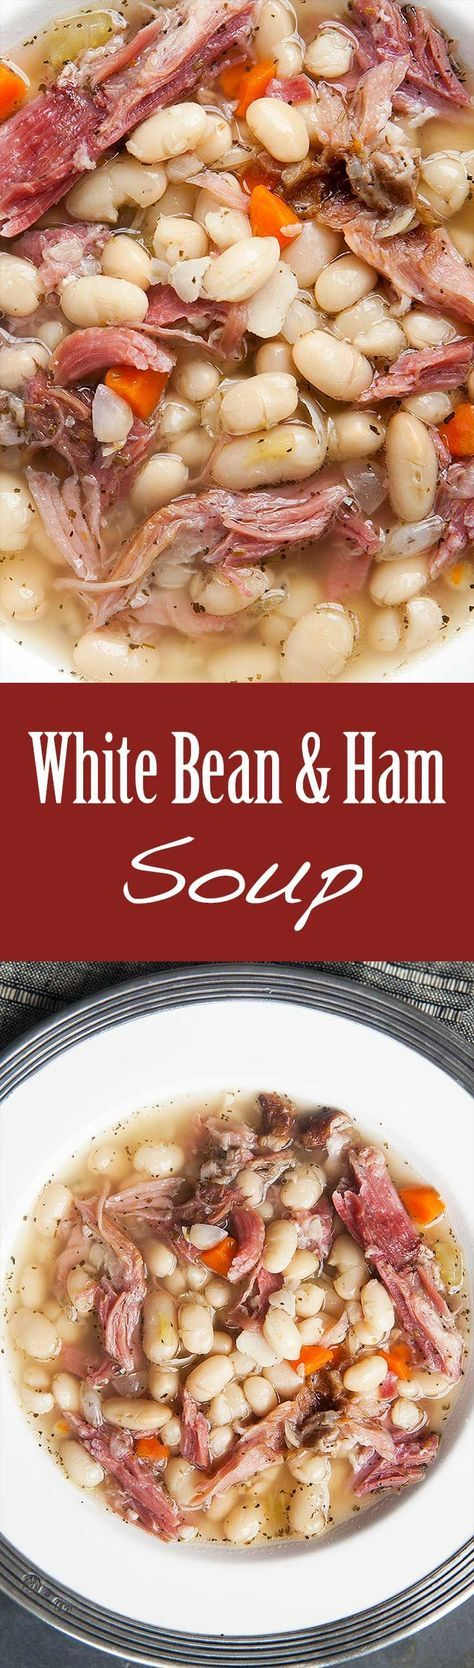 White Bean and Ham Soup ~ Hearty white bean and ham soup, perfect for cold winter days! White beans, ham shanks, onions, celery, carrots, garlic, Tabasco, and herbs. ~ http://SimplyRecipes.com